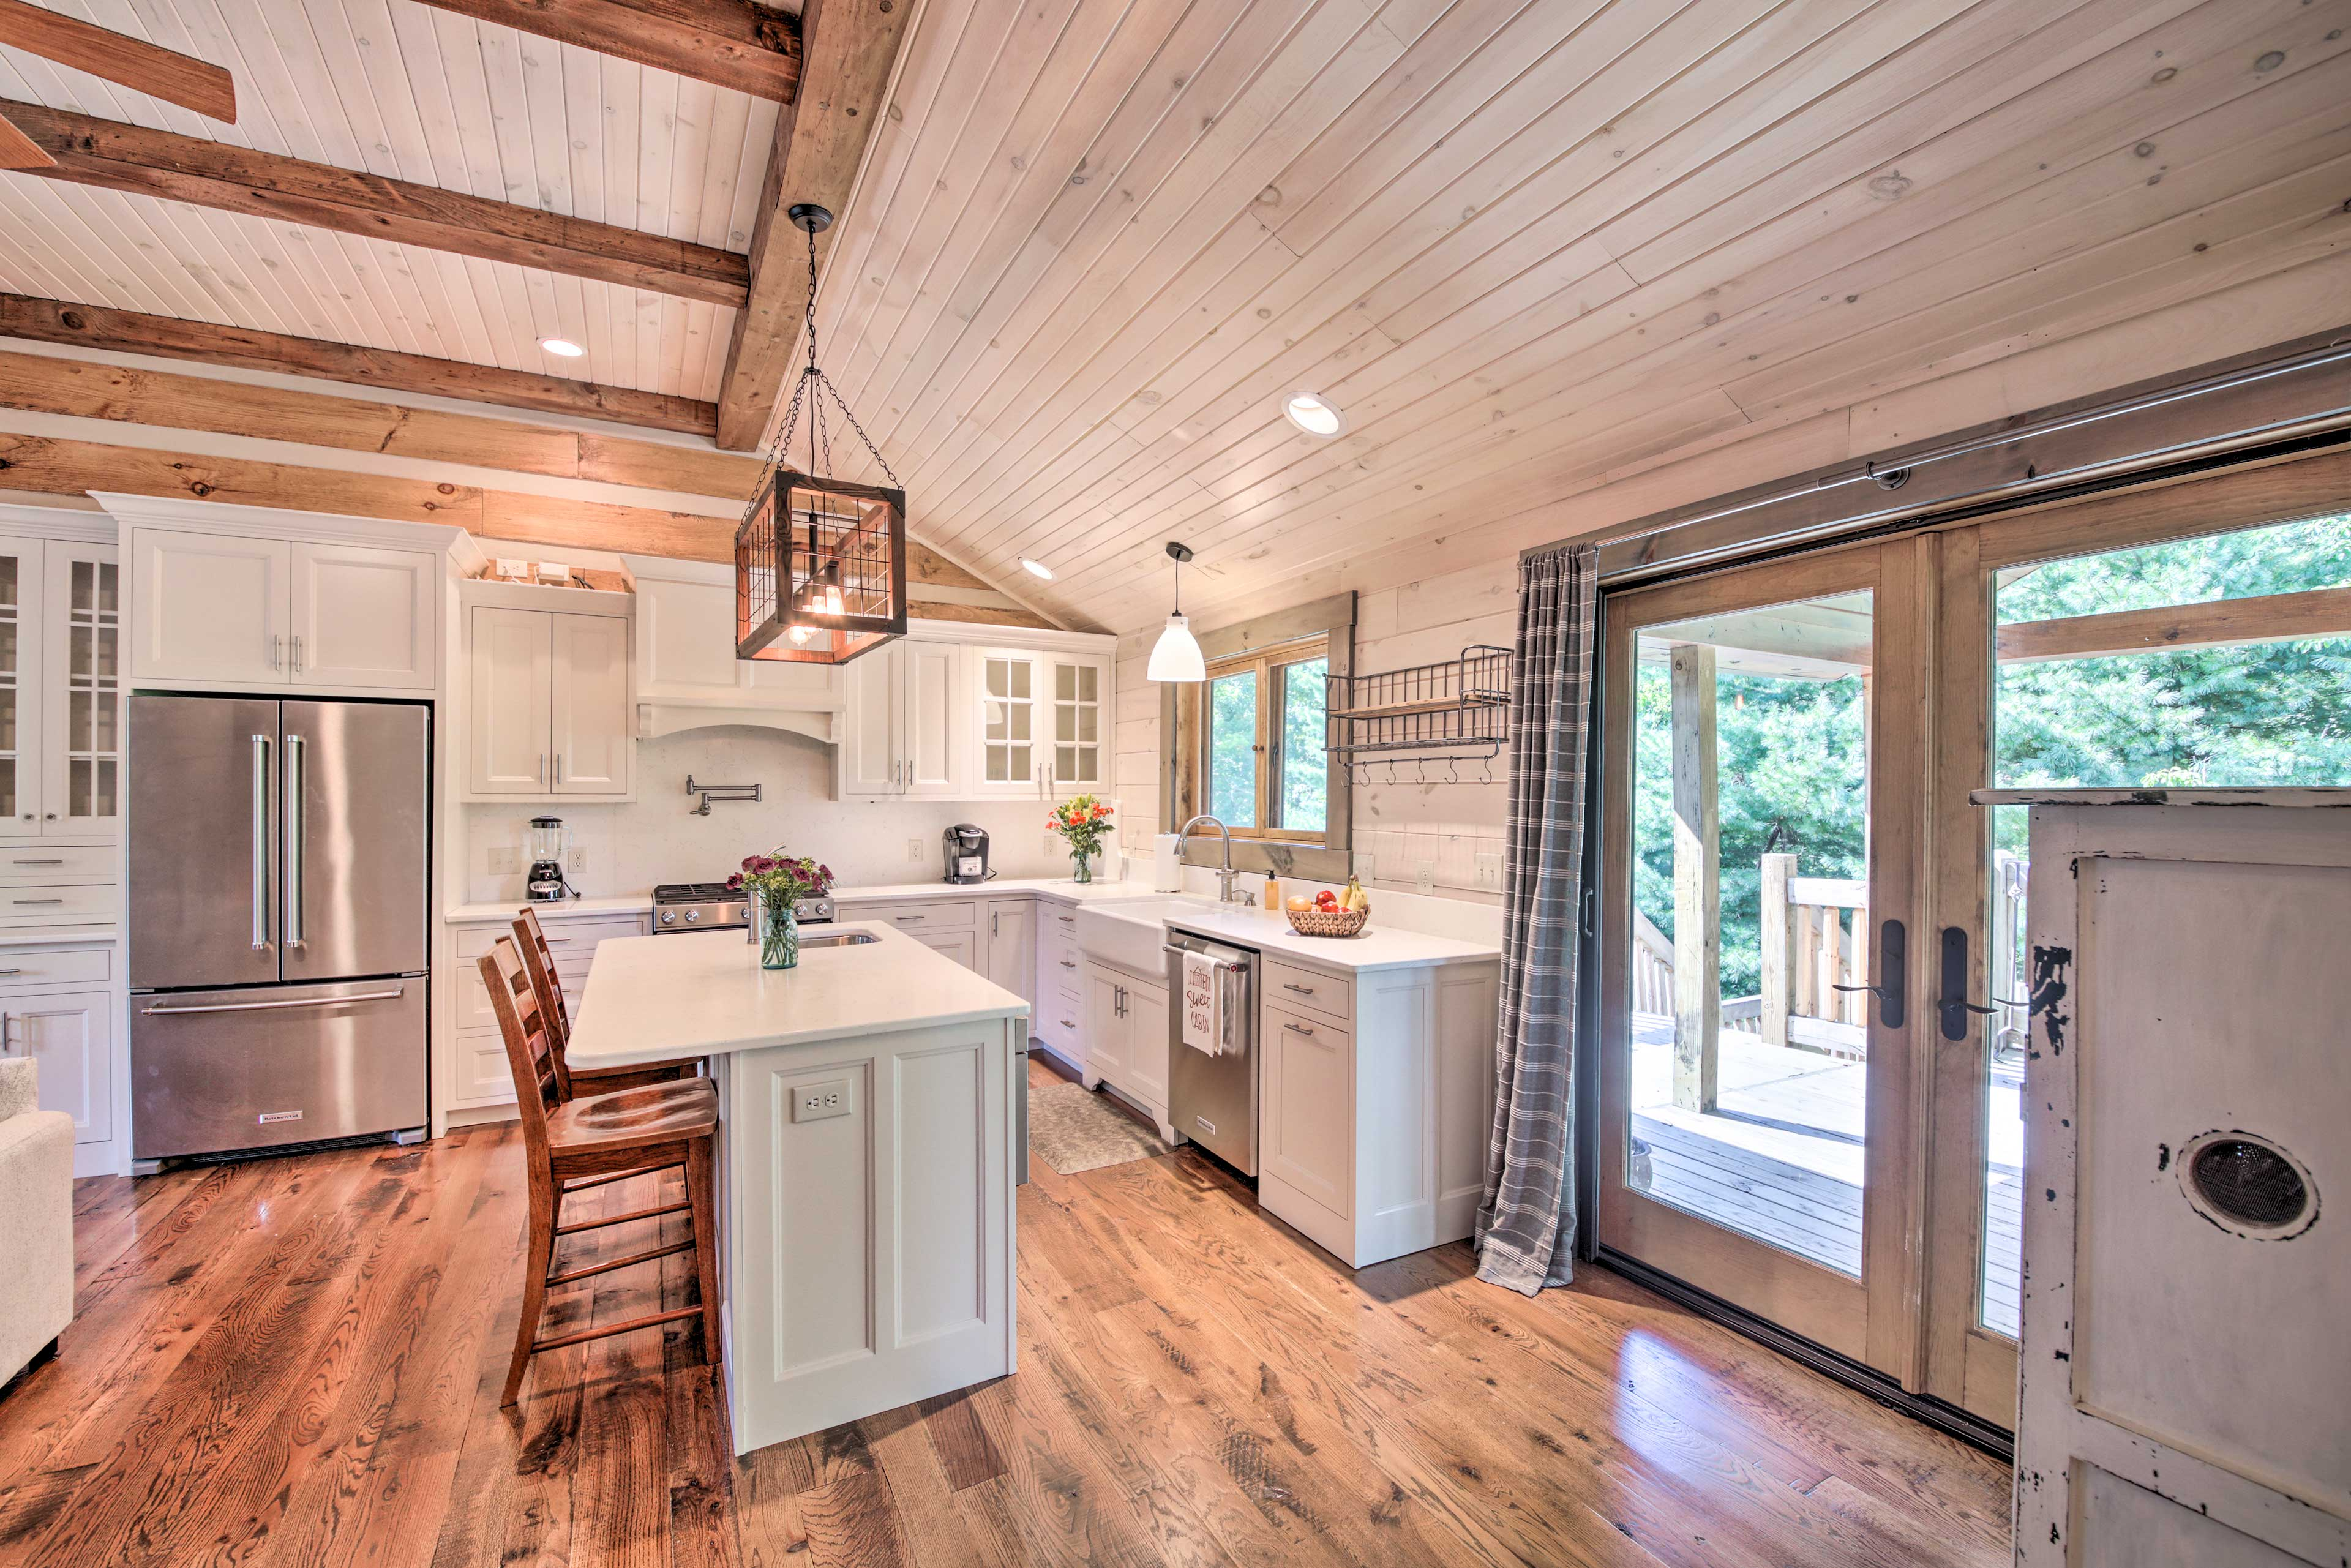 You'll find hardwood flooring throughout.